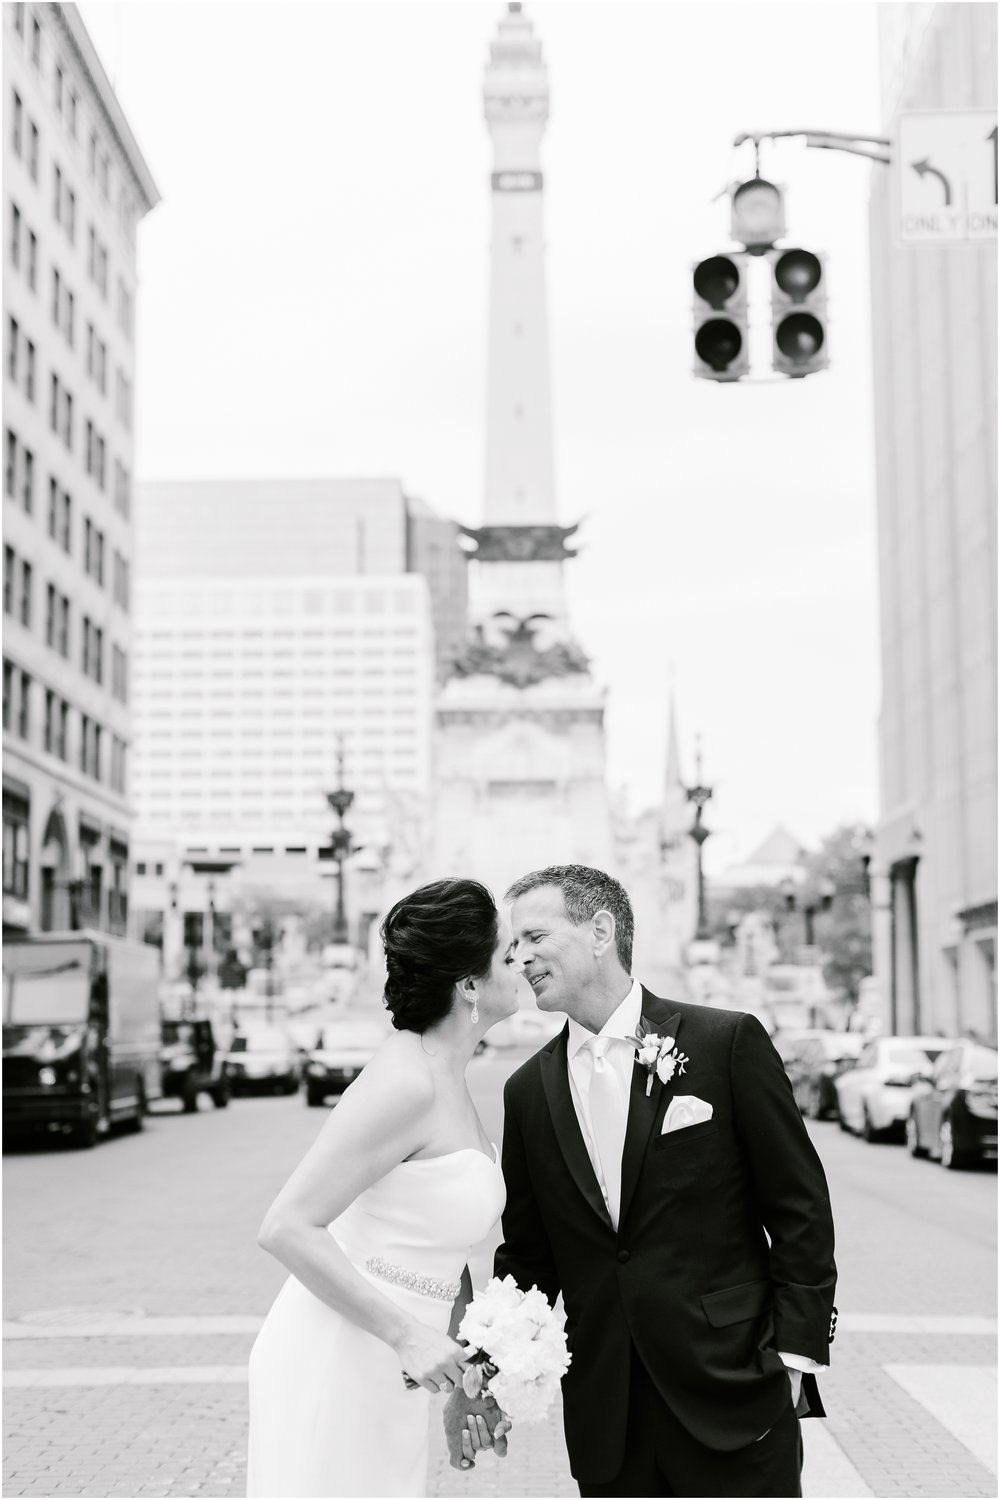 Rebecca_Shehorn_Photography_Indianapolis_Wedding_Photographer_8564.jpg